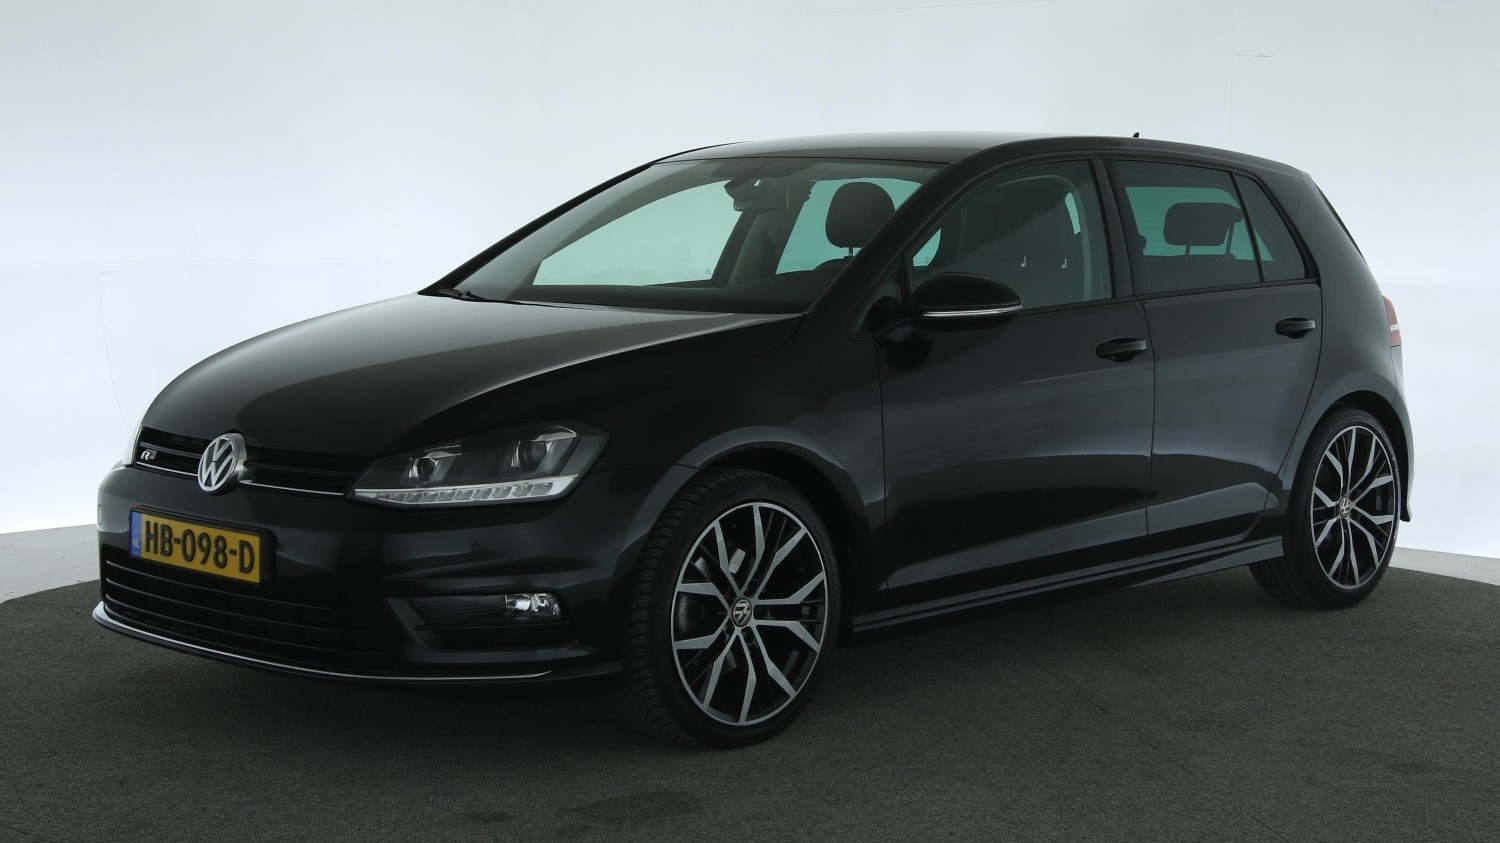 Volkswagen Golf Hatchback 2015 HB-098-D 1